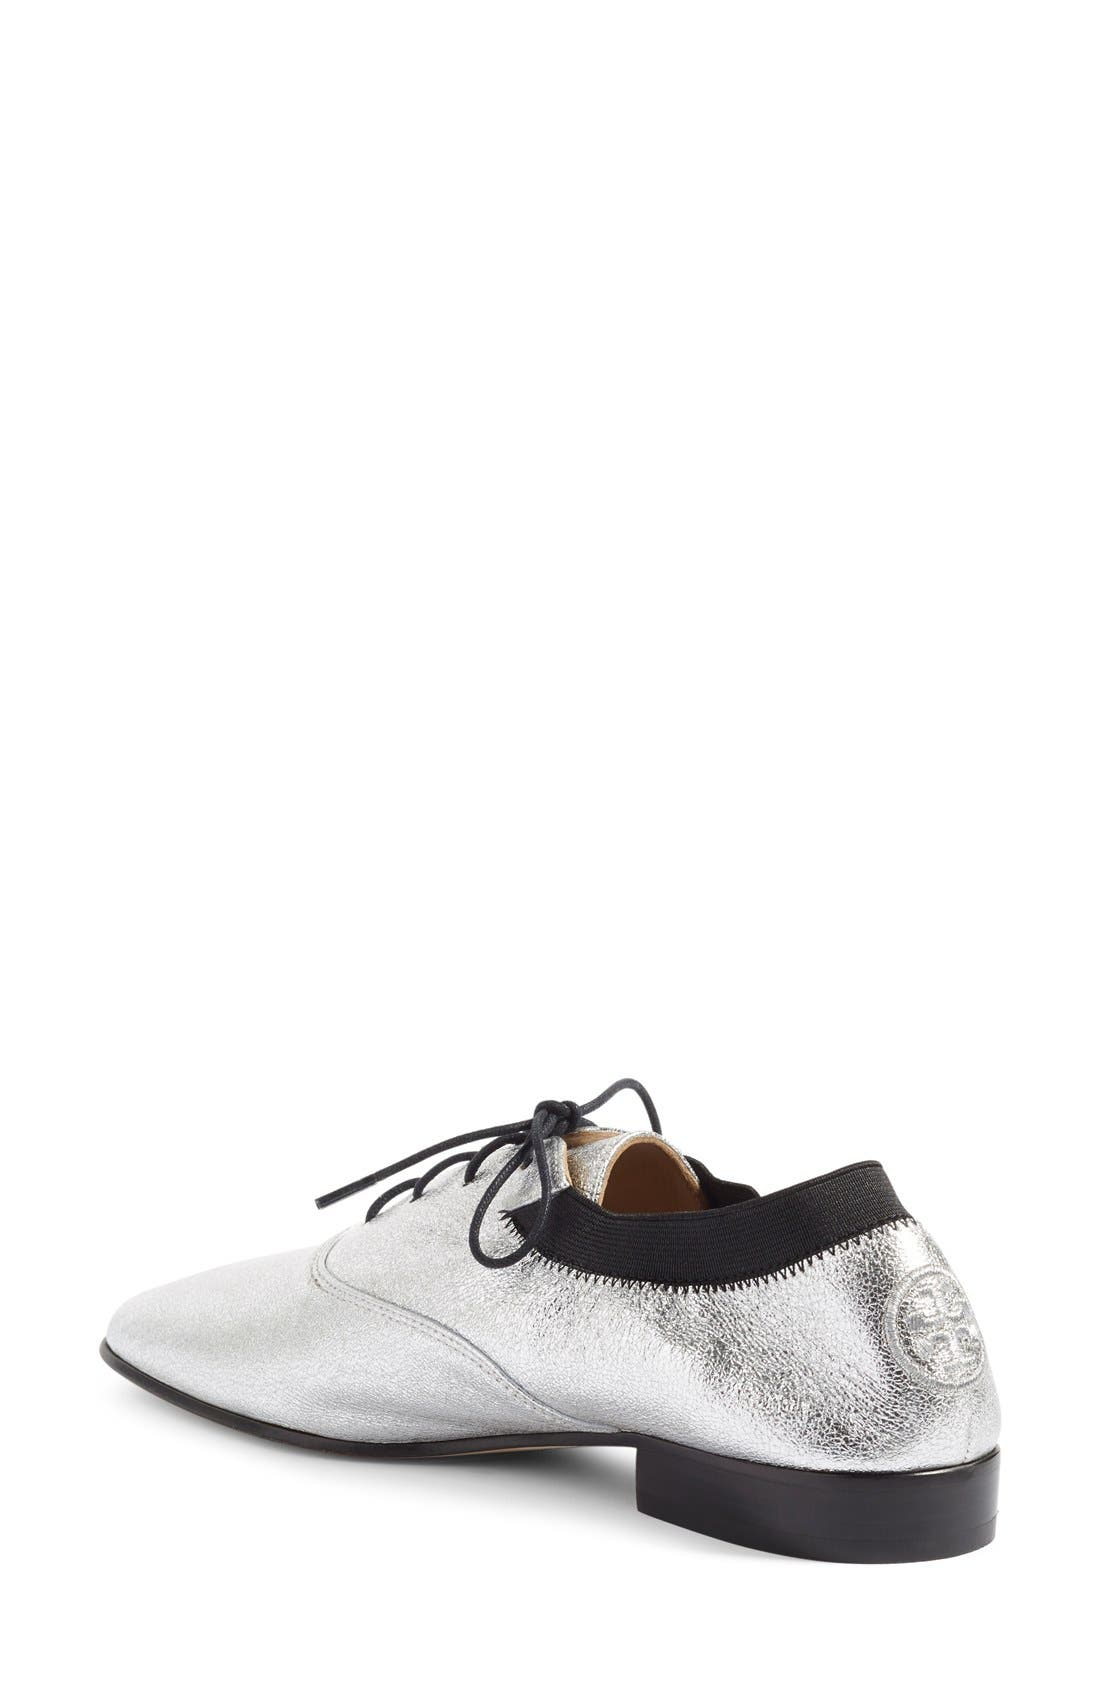 TORY BURCH,                             Bombe Oxford,                             Alternate thumbnail 2, color,                             041